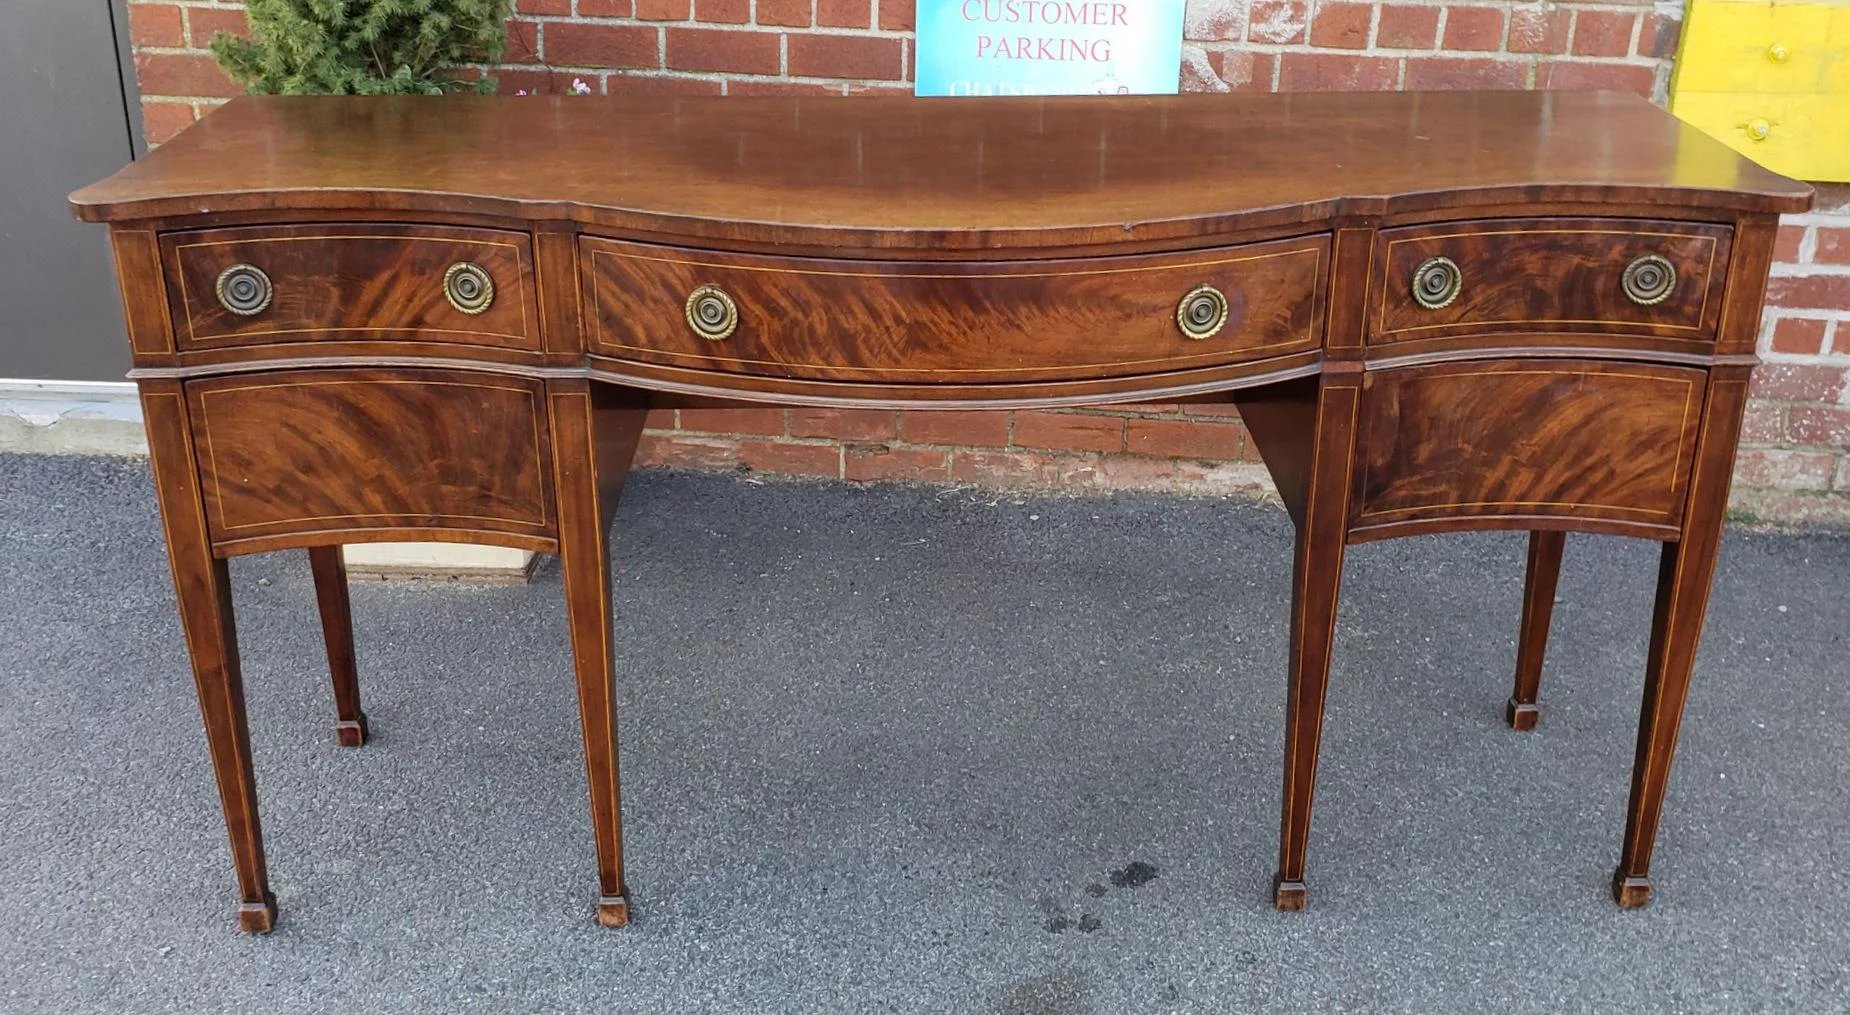 1940s Sheraton Style Serpentine Mahogany Dining Room Sideboard : Chatsworth Antiques | Ruby Lane